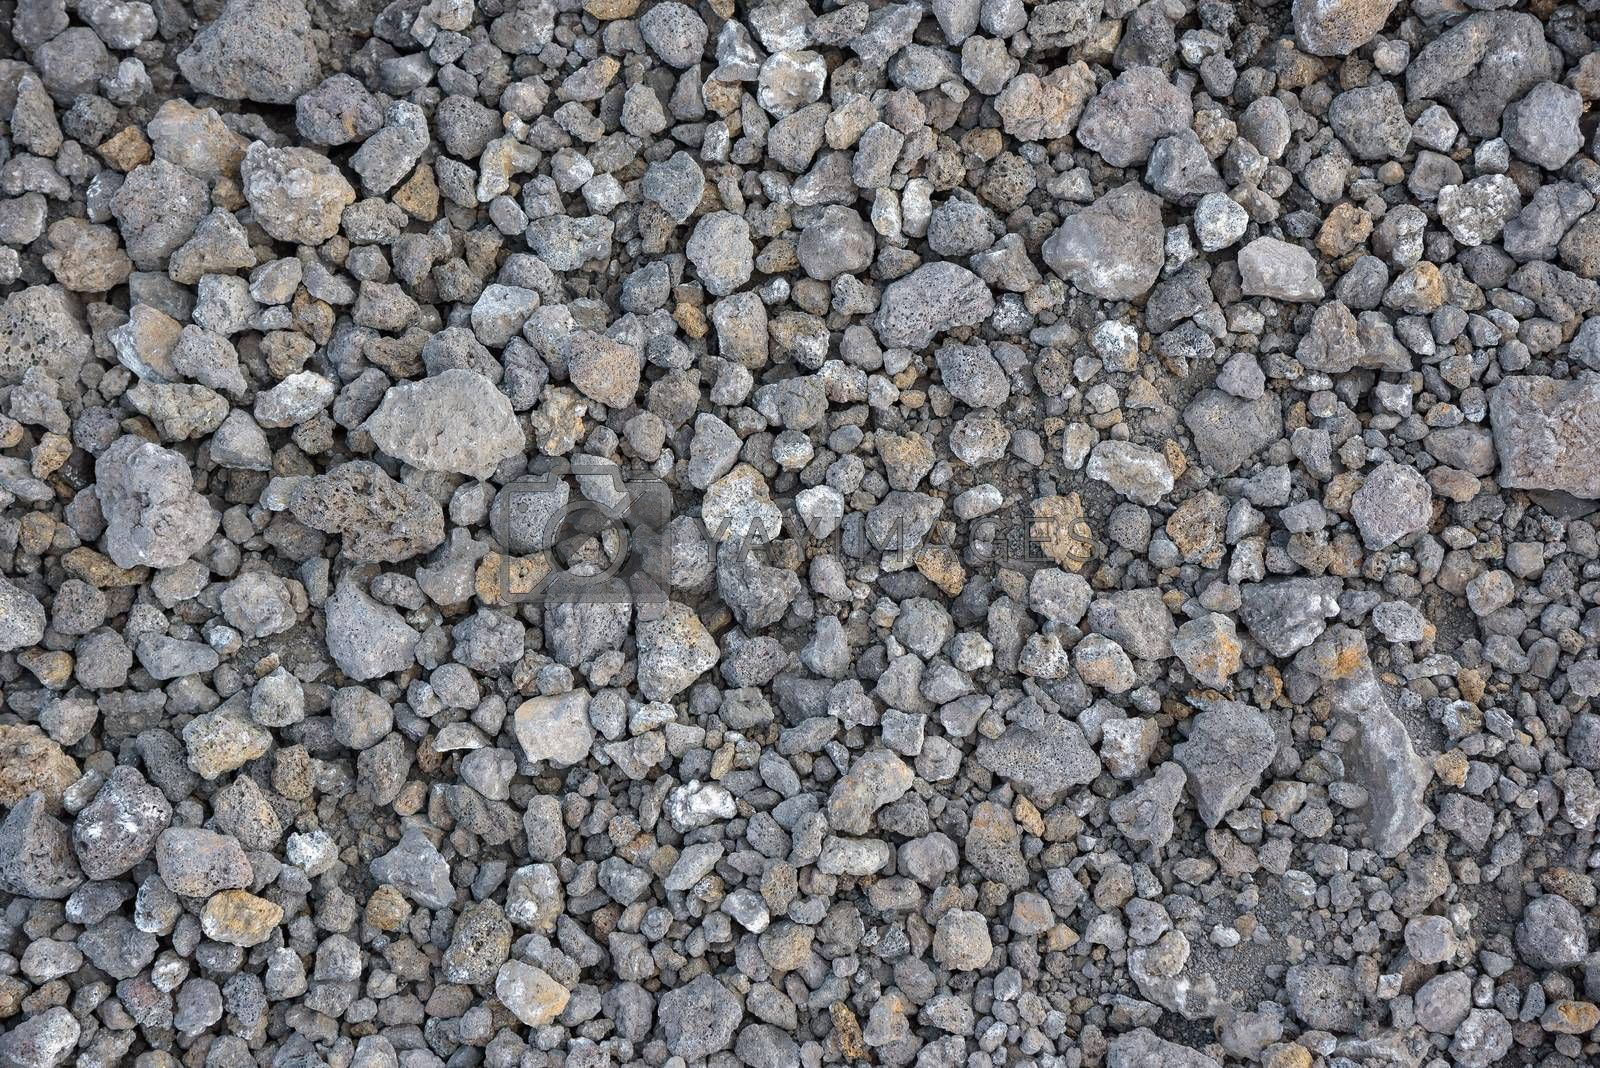 Natural background or texture made of volcanic rocks